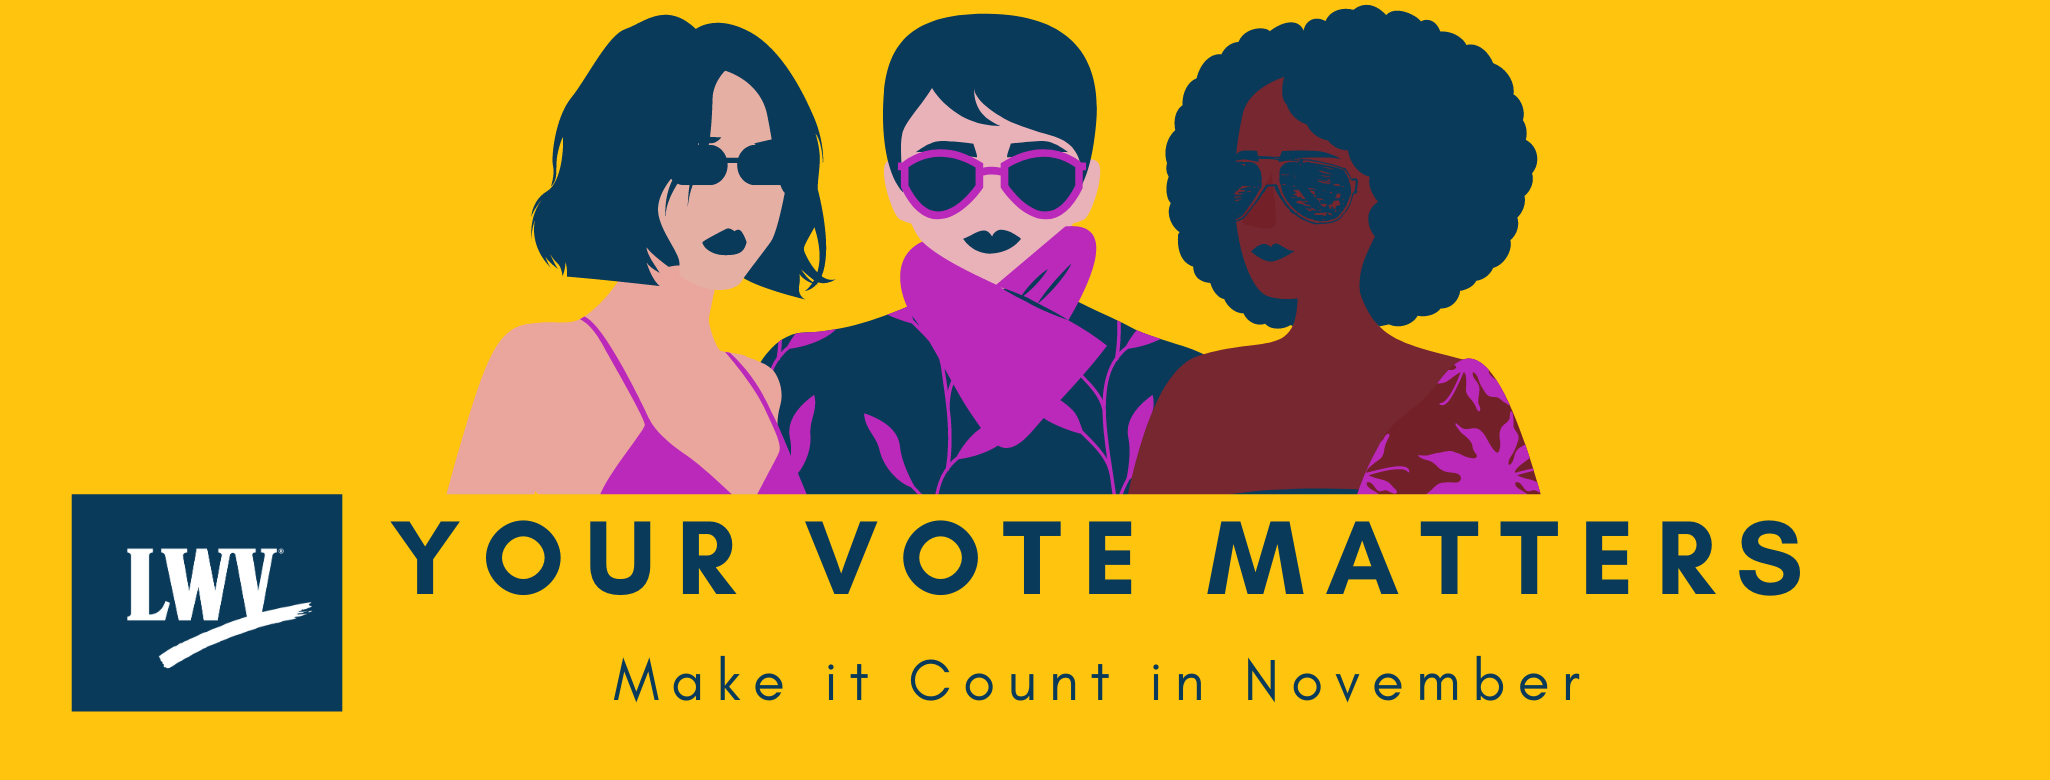 Your vote matters graphic with three women